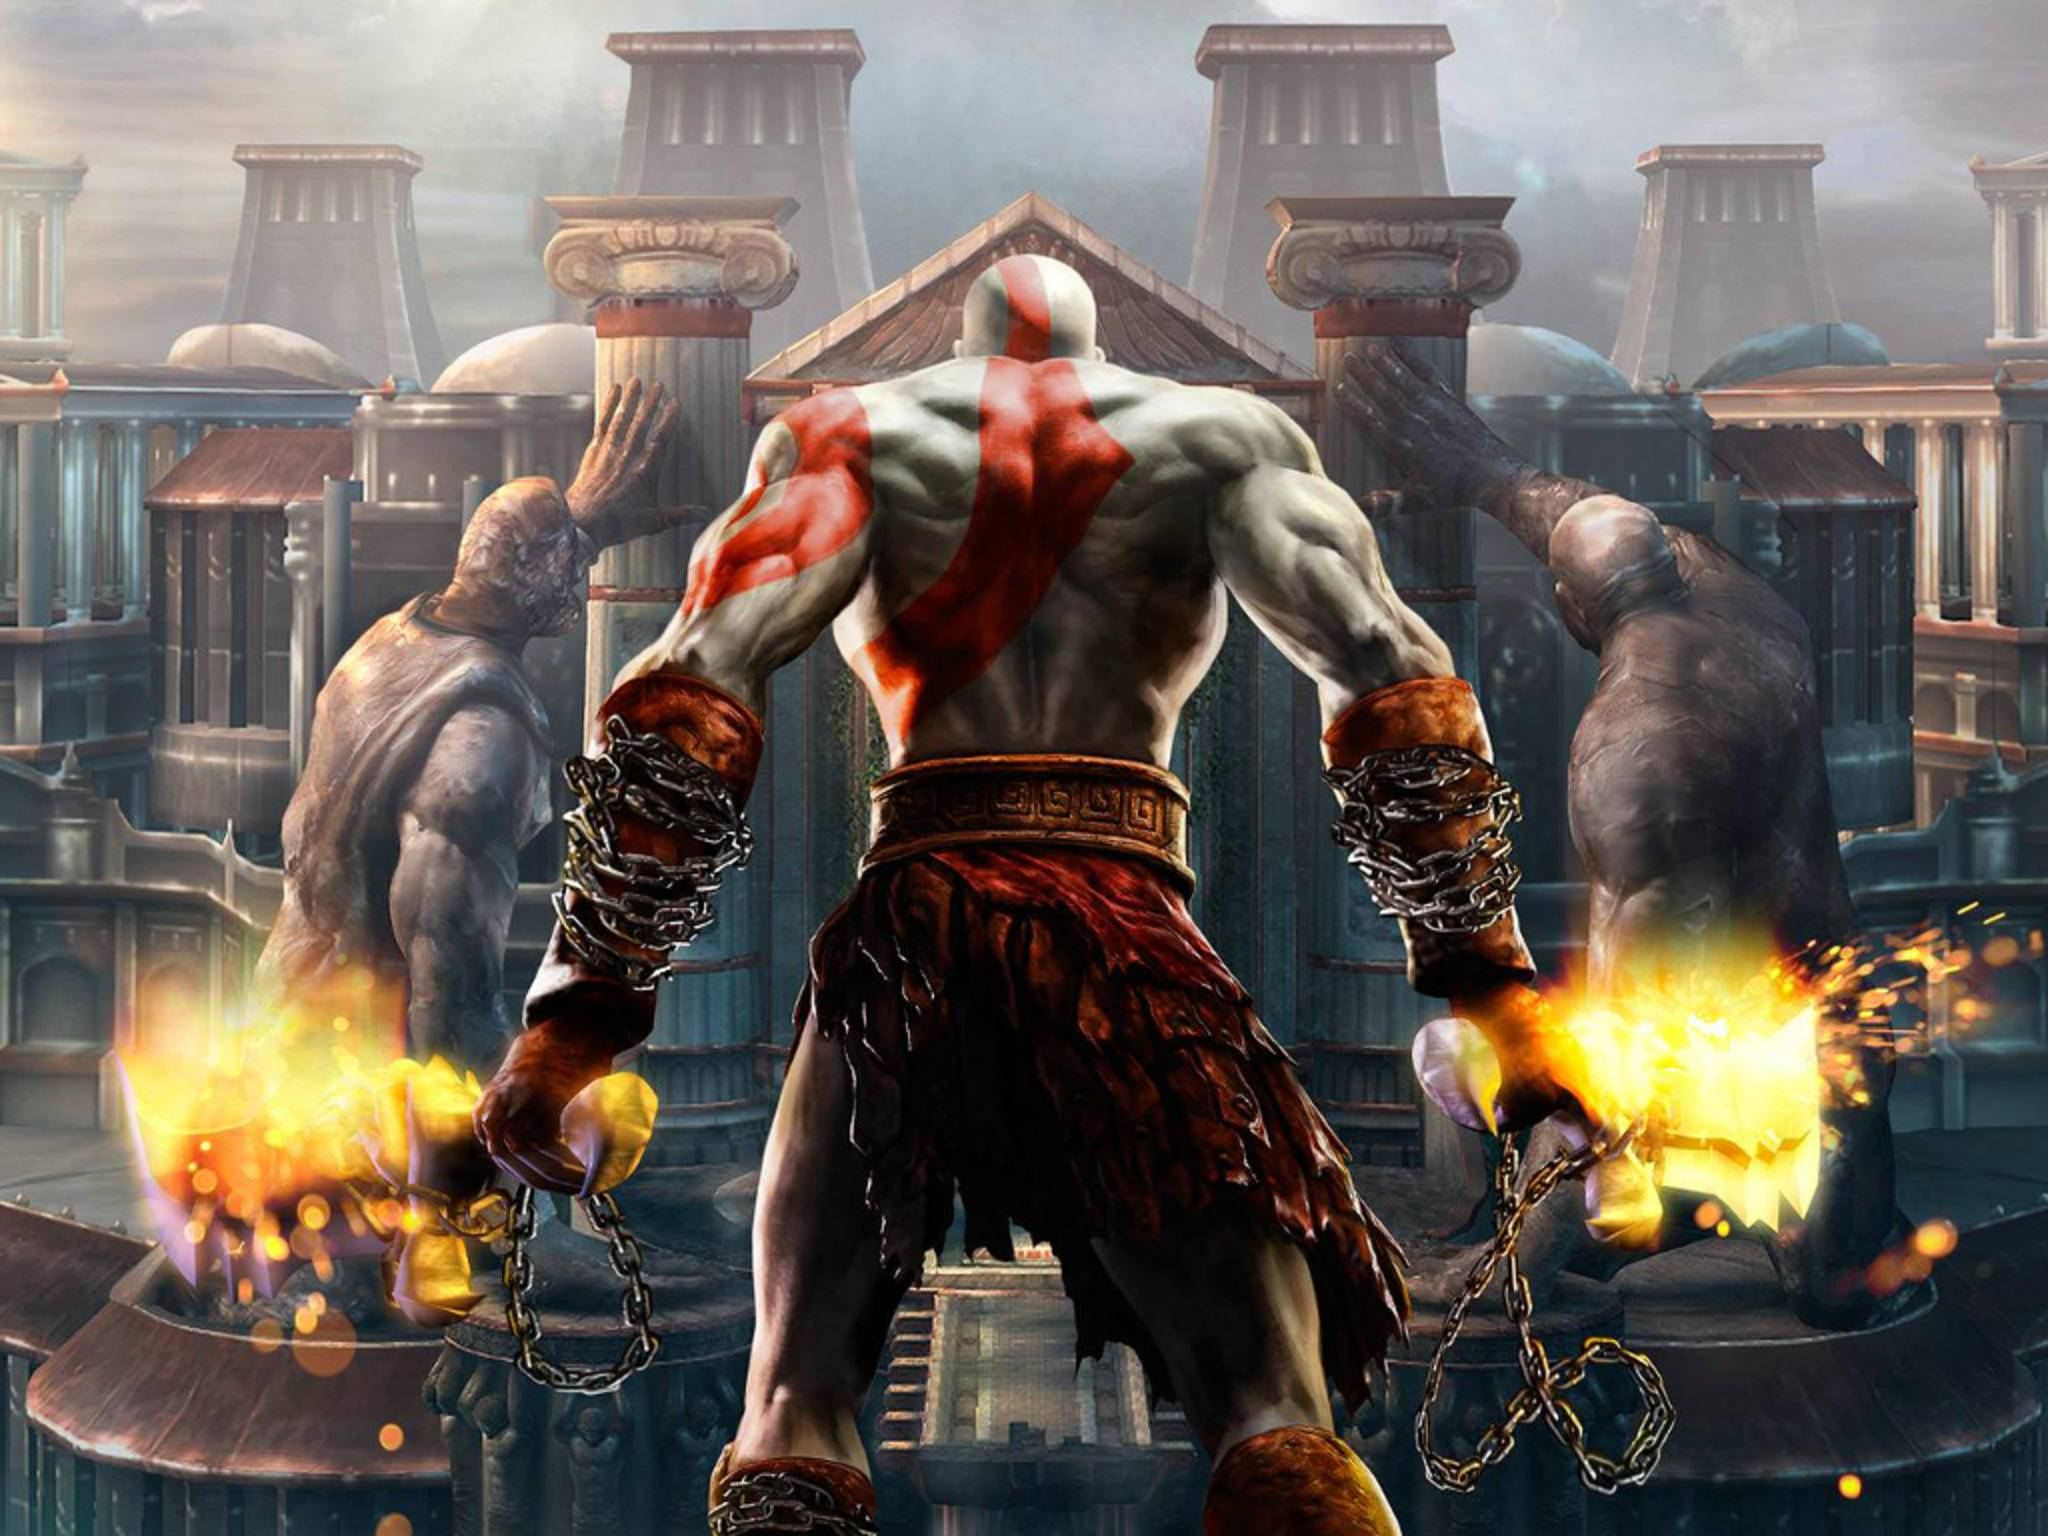 """God of War 4"": Reist Kratos diesmal nach Walhalla?"